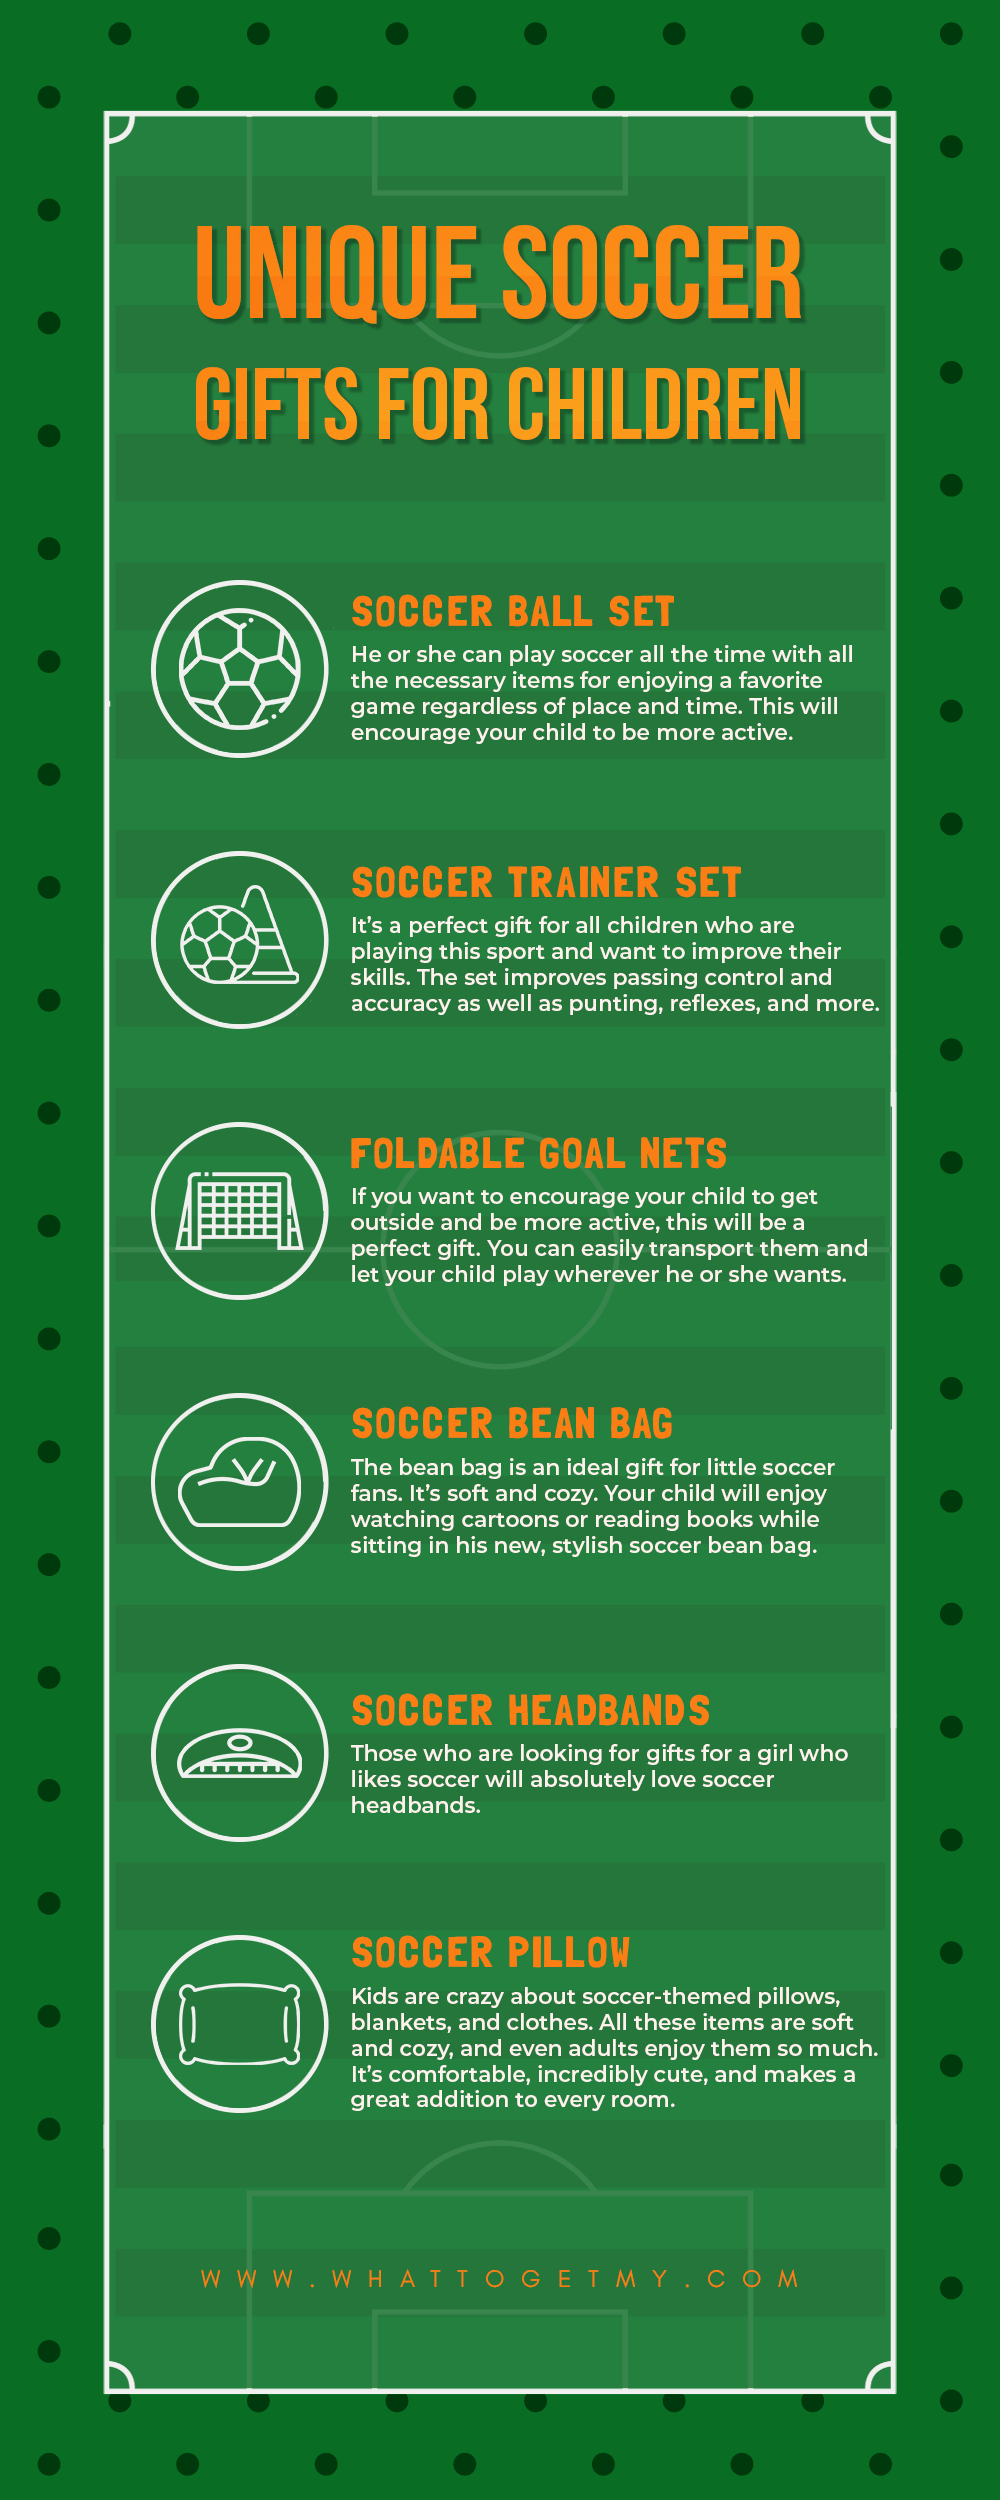 Infographic Unique Soccer Gifts for Children